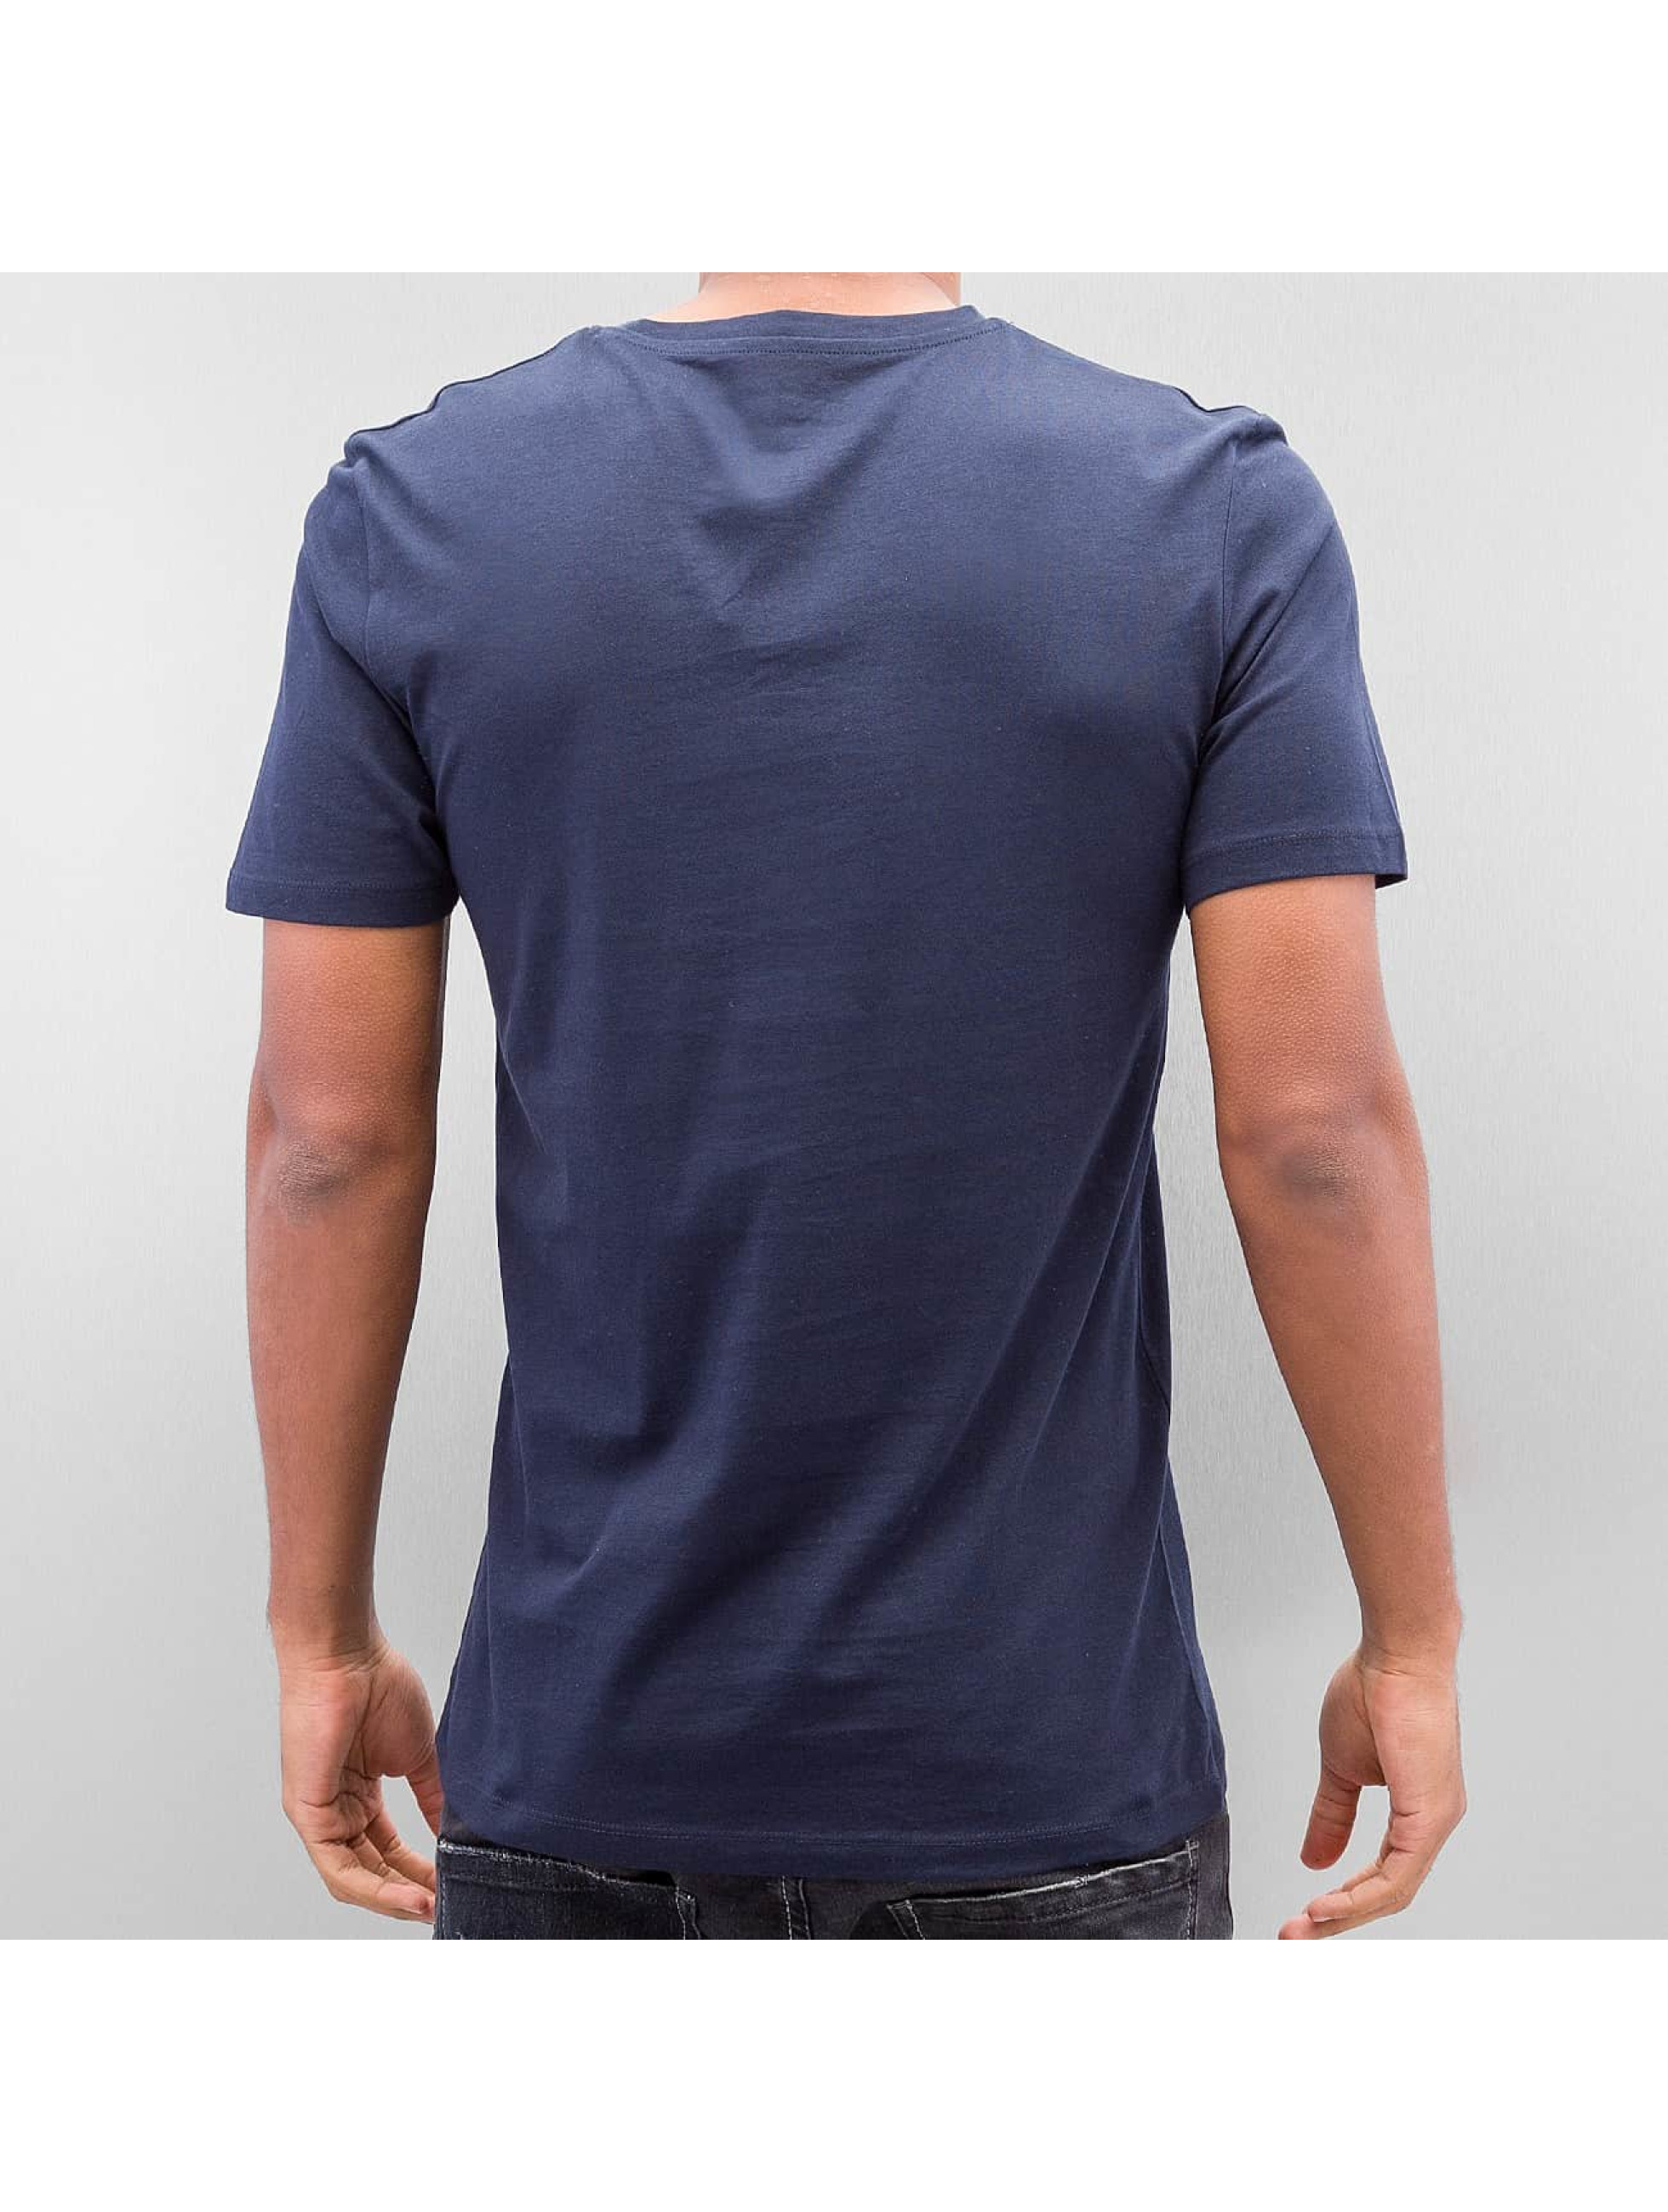 Jack & Jones T-Shirt Jorsedret blue